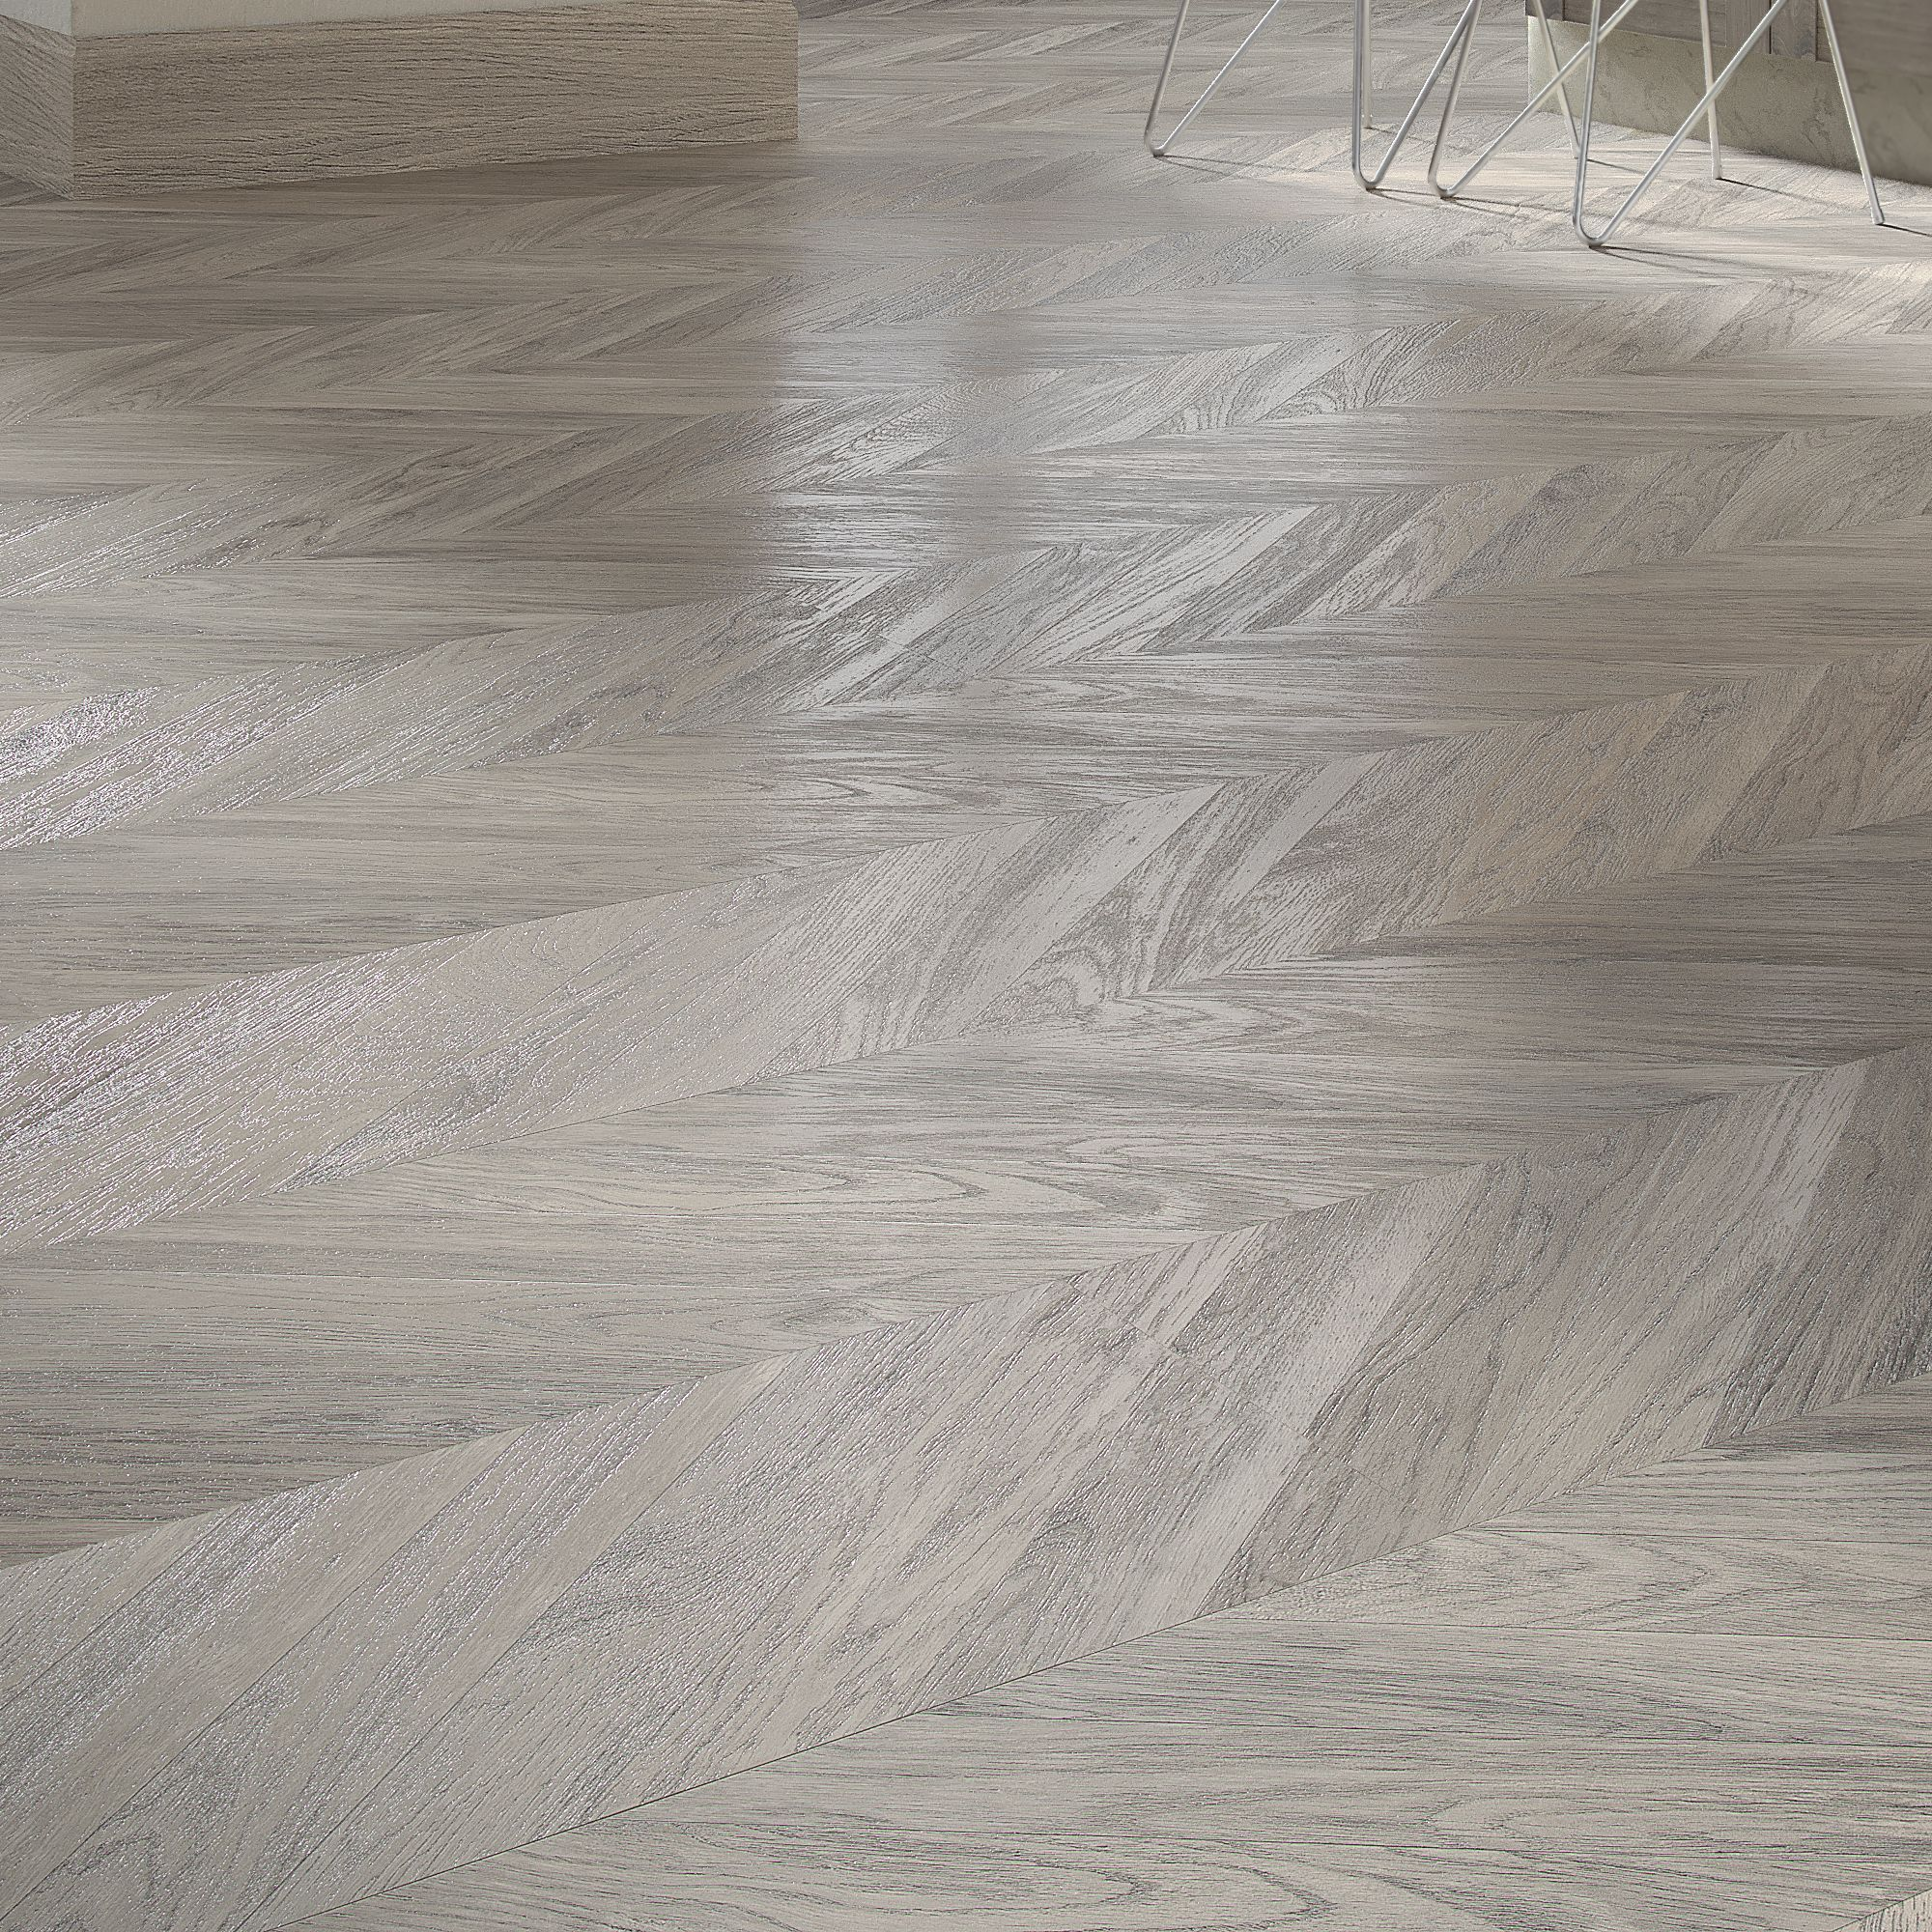 Alessano Herringbone Grey Embossed Laminate Flooring 1.39 m² Pack | Departments | DIY at B&Q